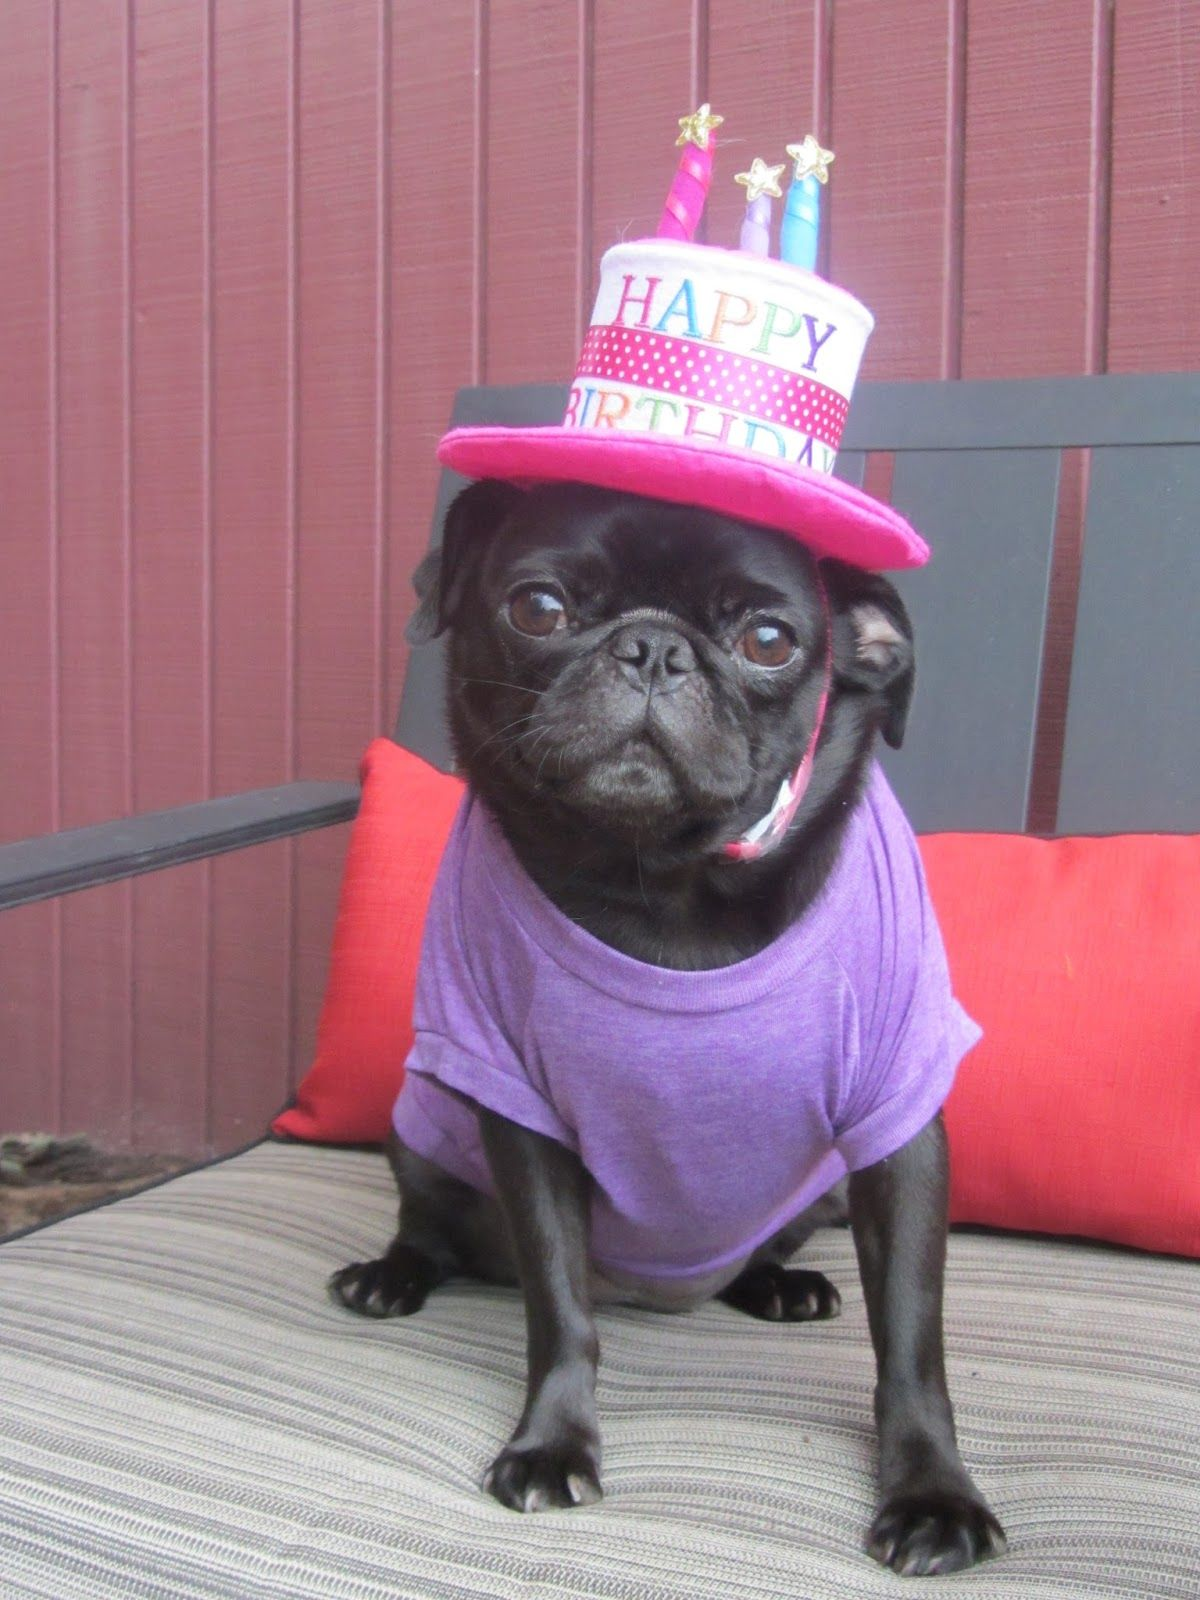 Happy Birthday Black Pug Click Image For More Details About Playing With Pet Dogs Happy Birthday Pug Pug Birthday Meme Happy Birthday Dog